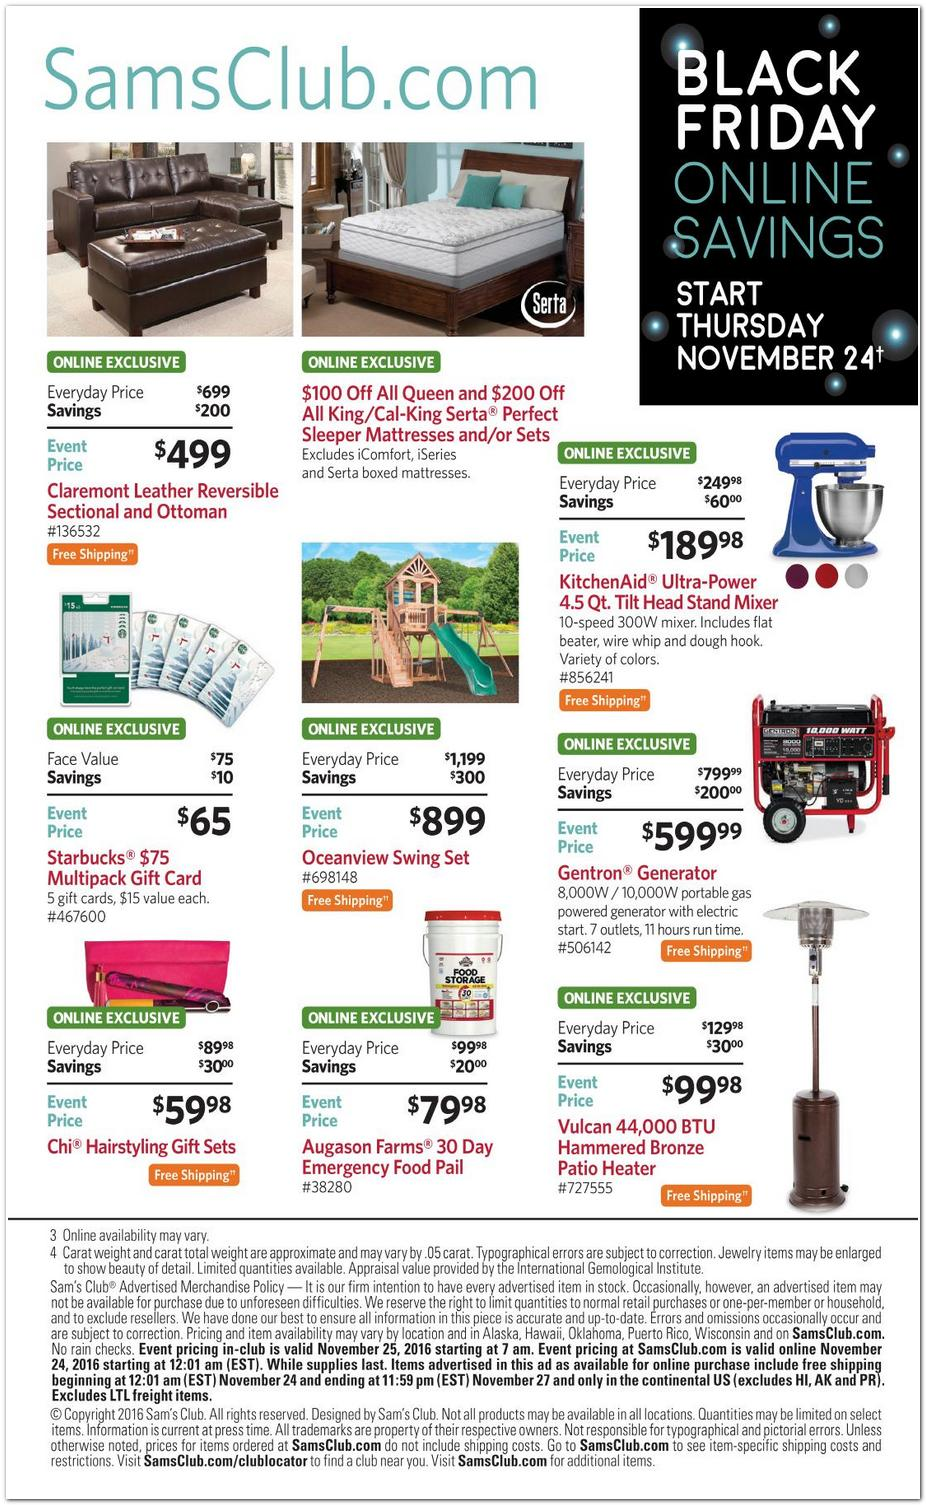 sams-club-black-friday-2016-ad-scan-p-11